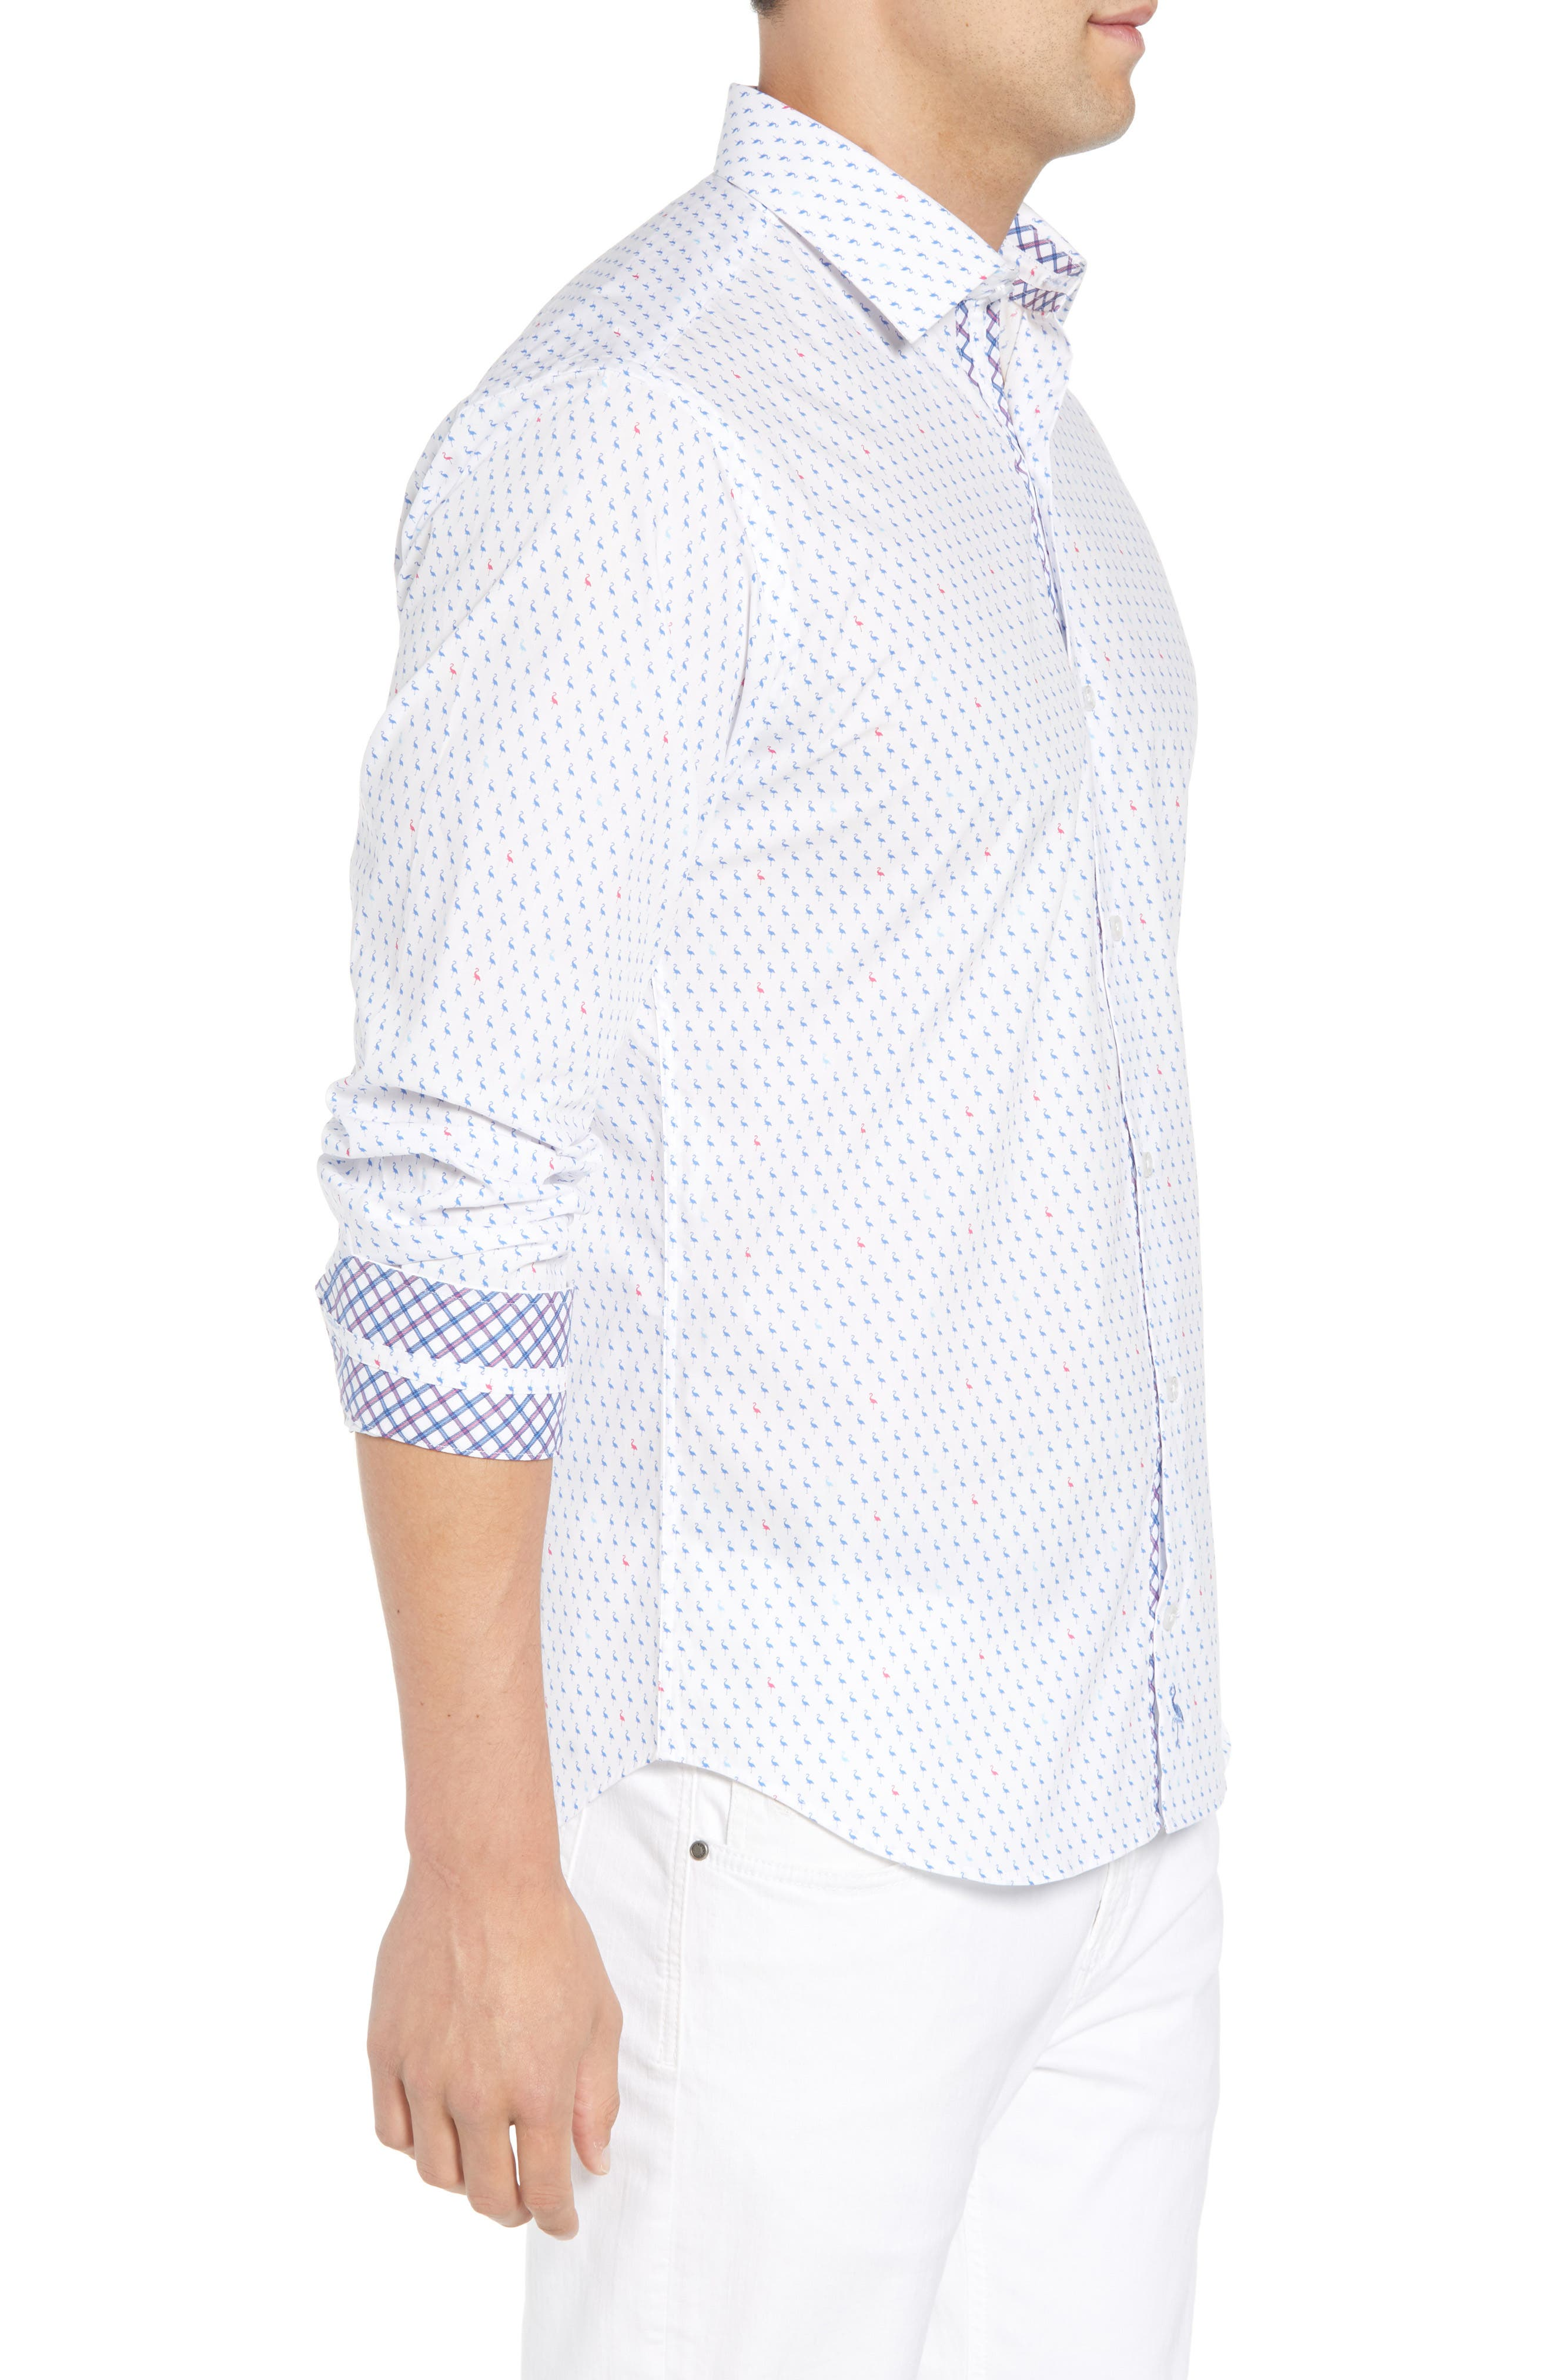 Auden Regular Fit Print Sport Shirt,                             Alternate thumbnail 3, color,                             490